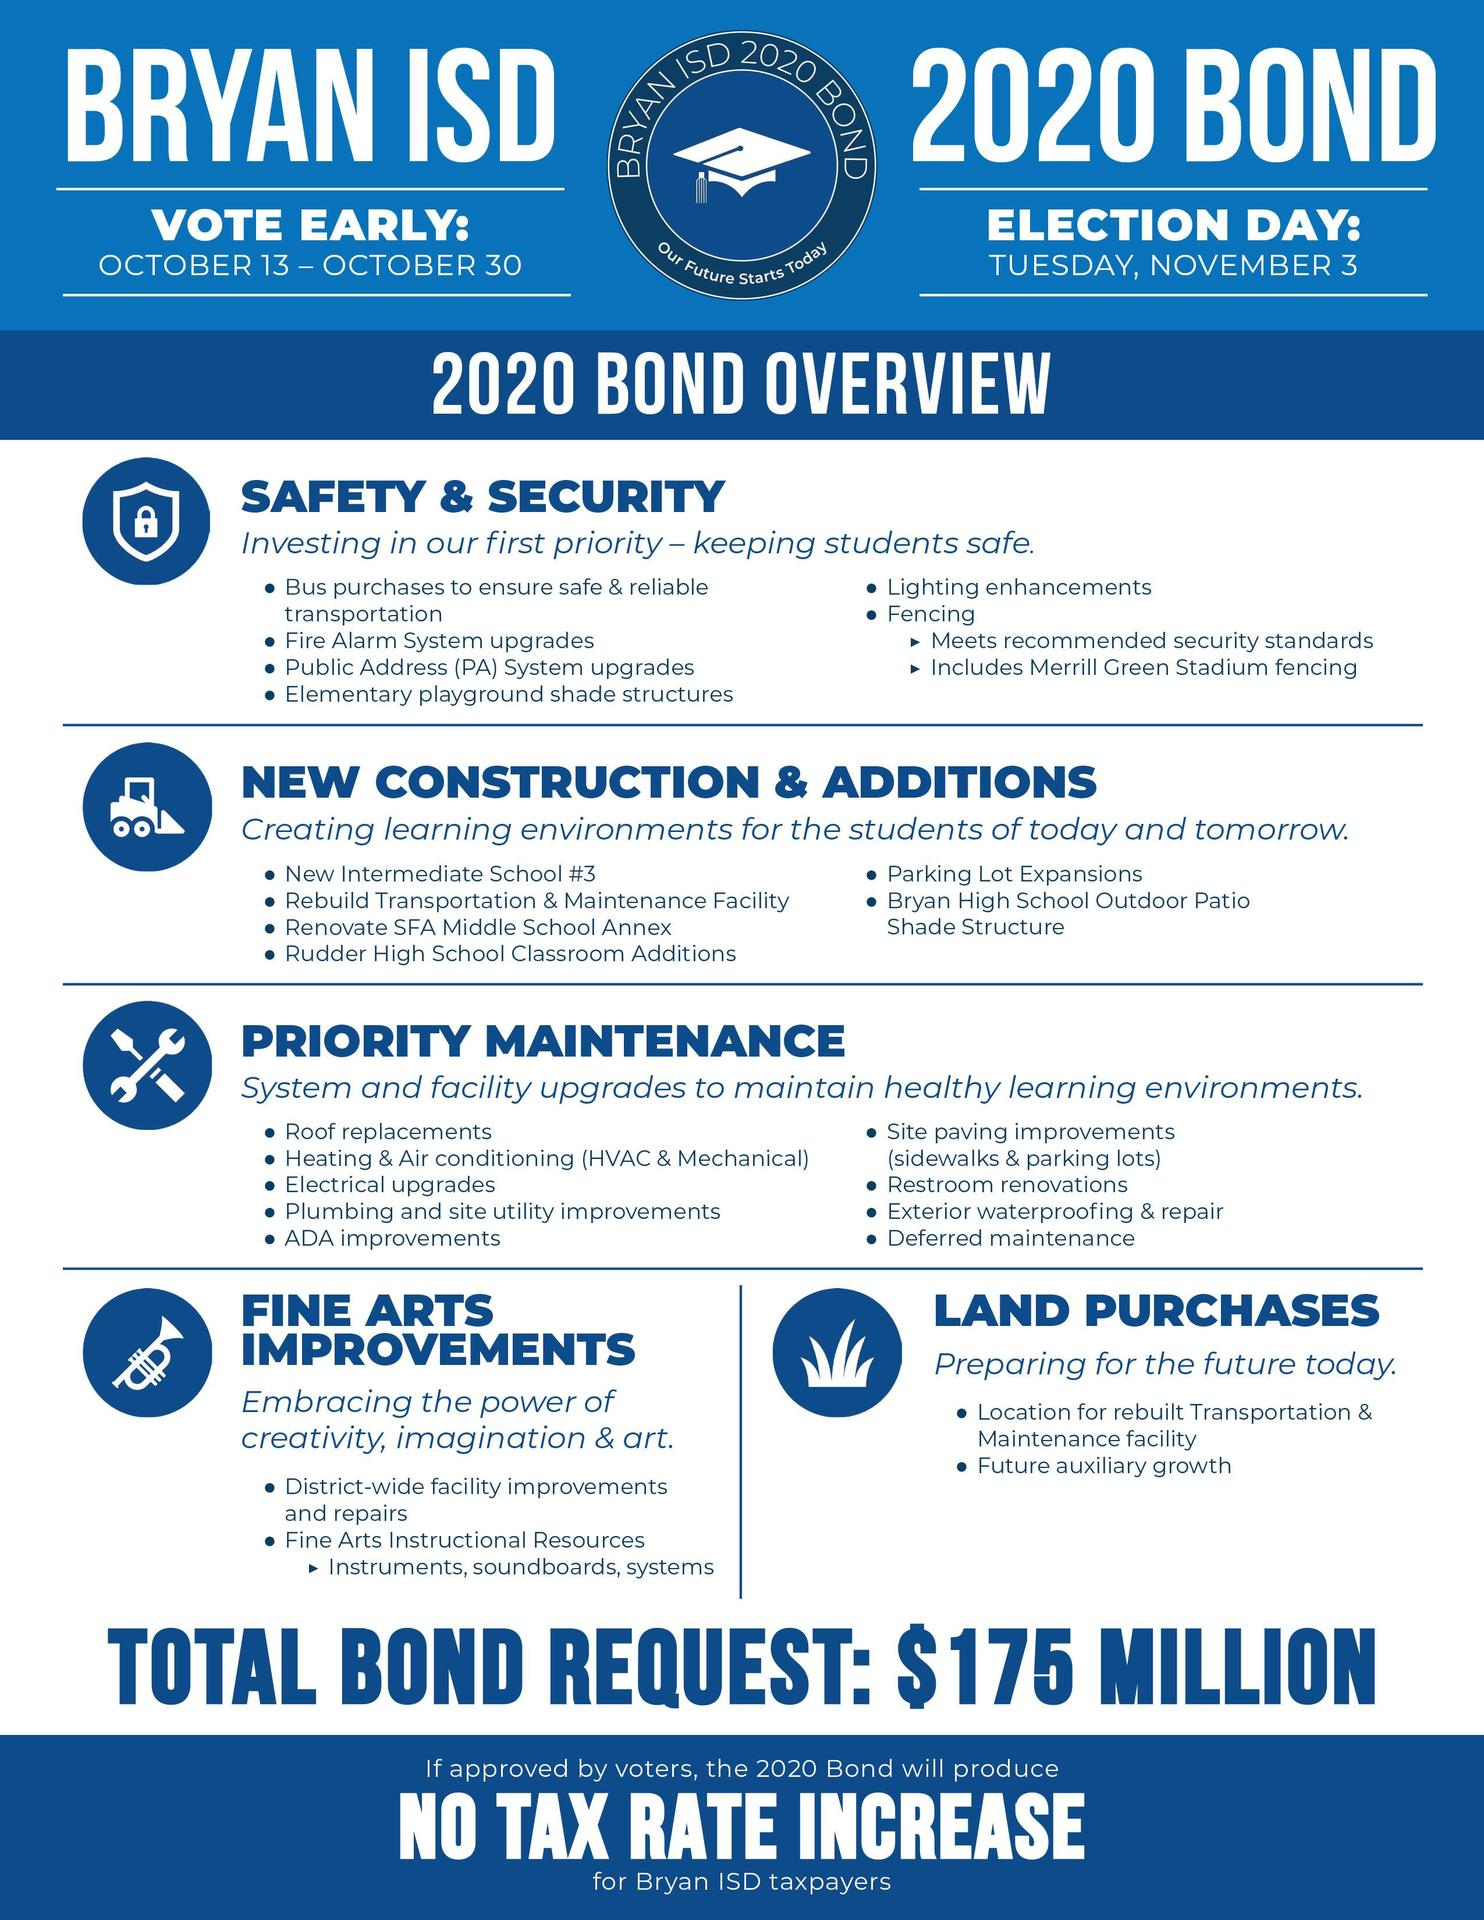 Bryan ISD 2020 Bond Fact Sheet